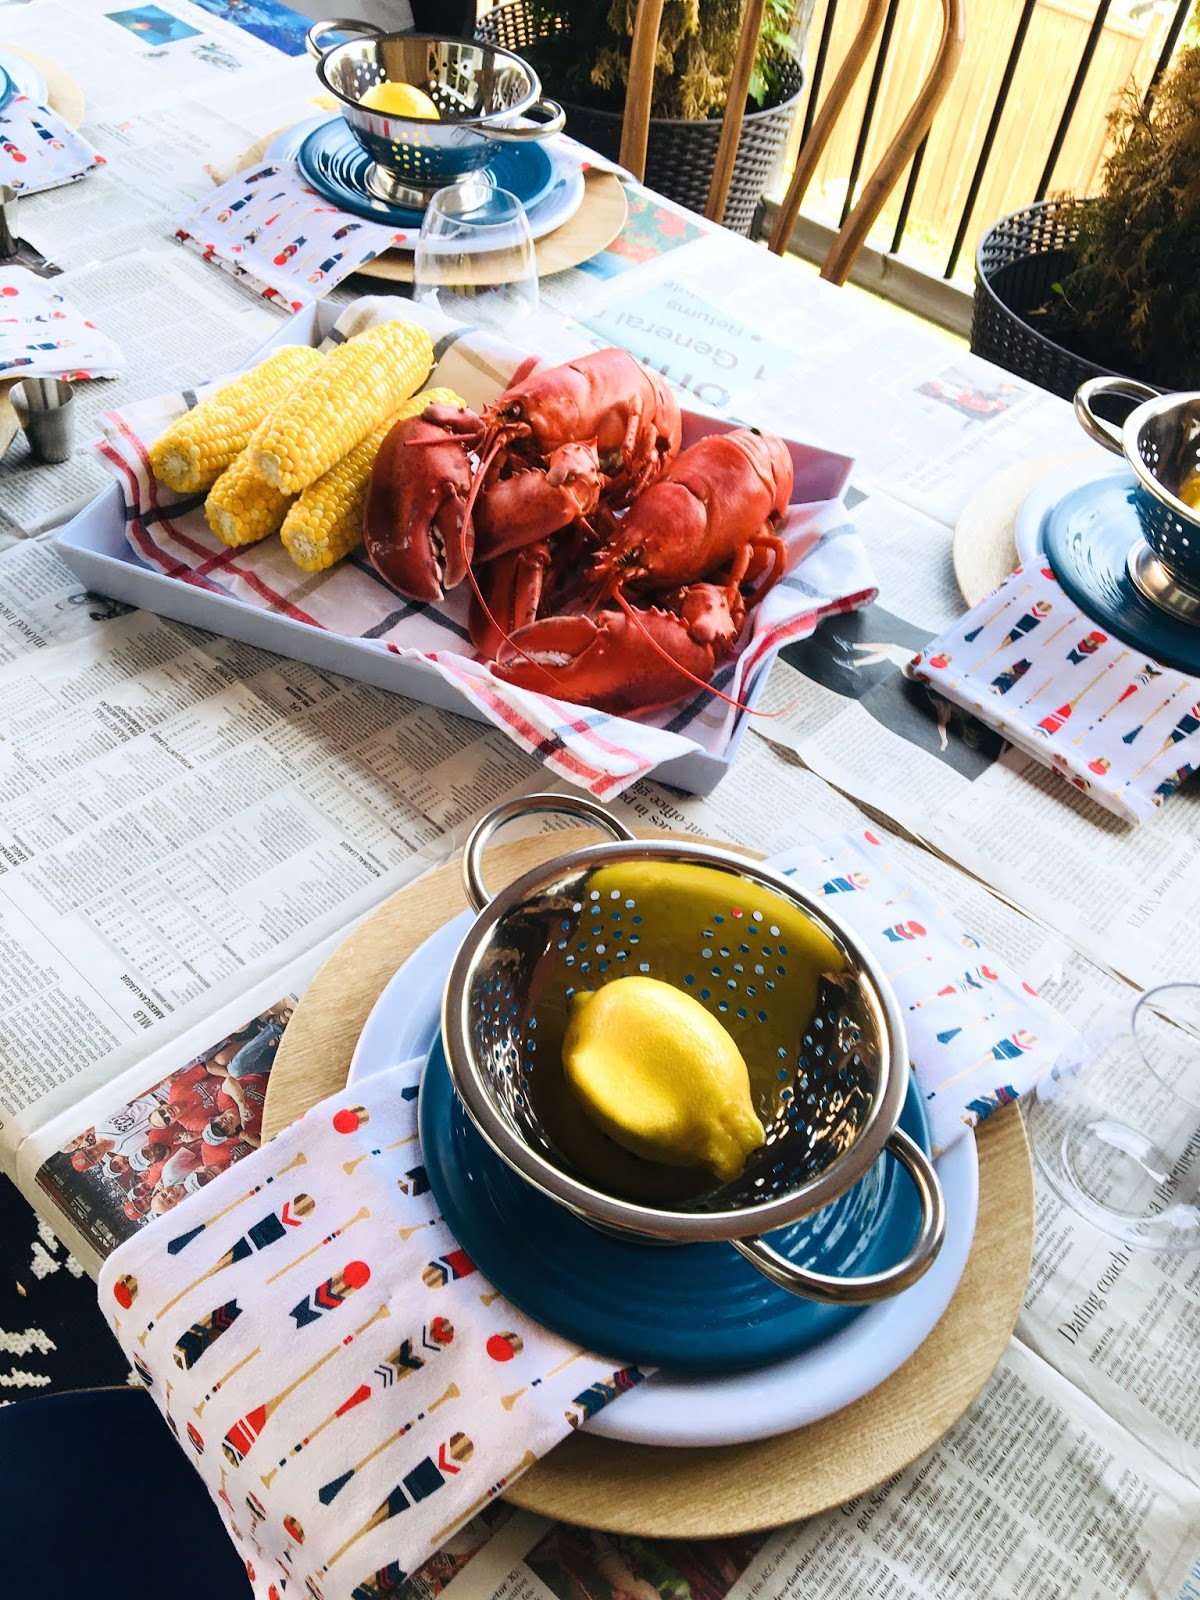 Lobster-dinner-table-setting-KSP-harlow-and-thistle-4